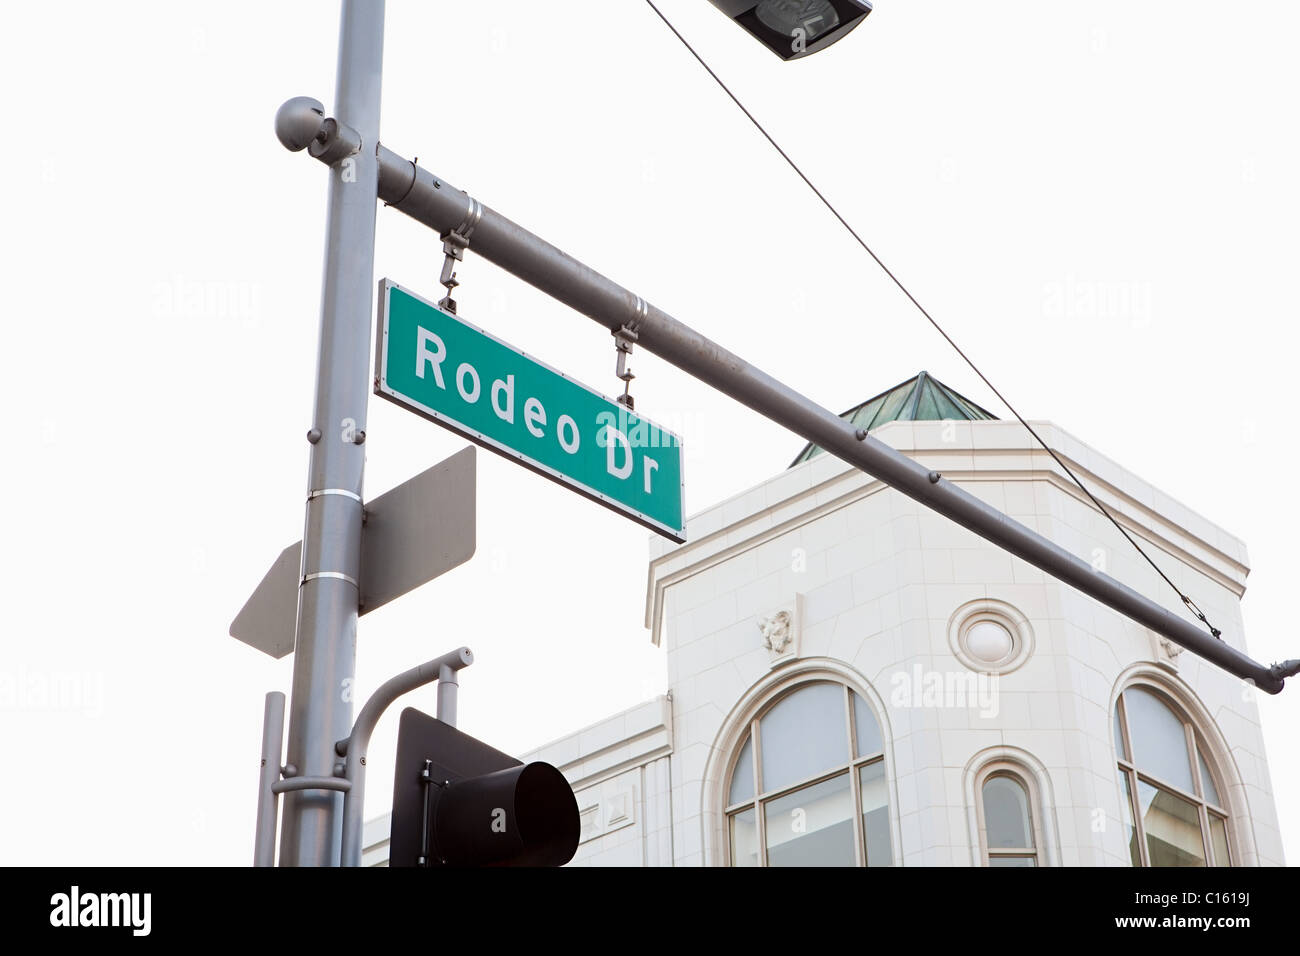 Rodeo Drive, Beverly Hills, Los Angeles County, California, USA - Stock Image